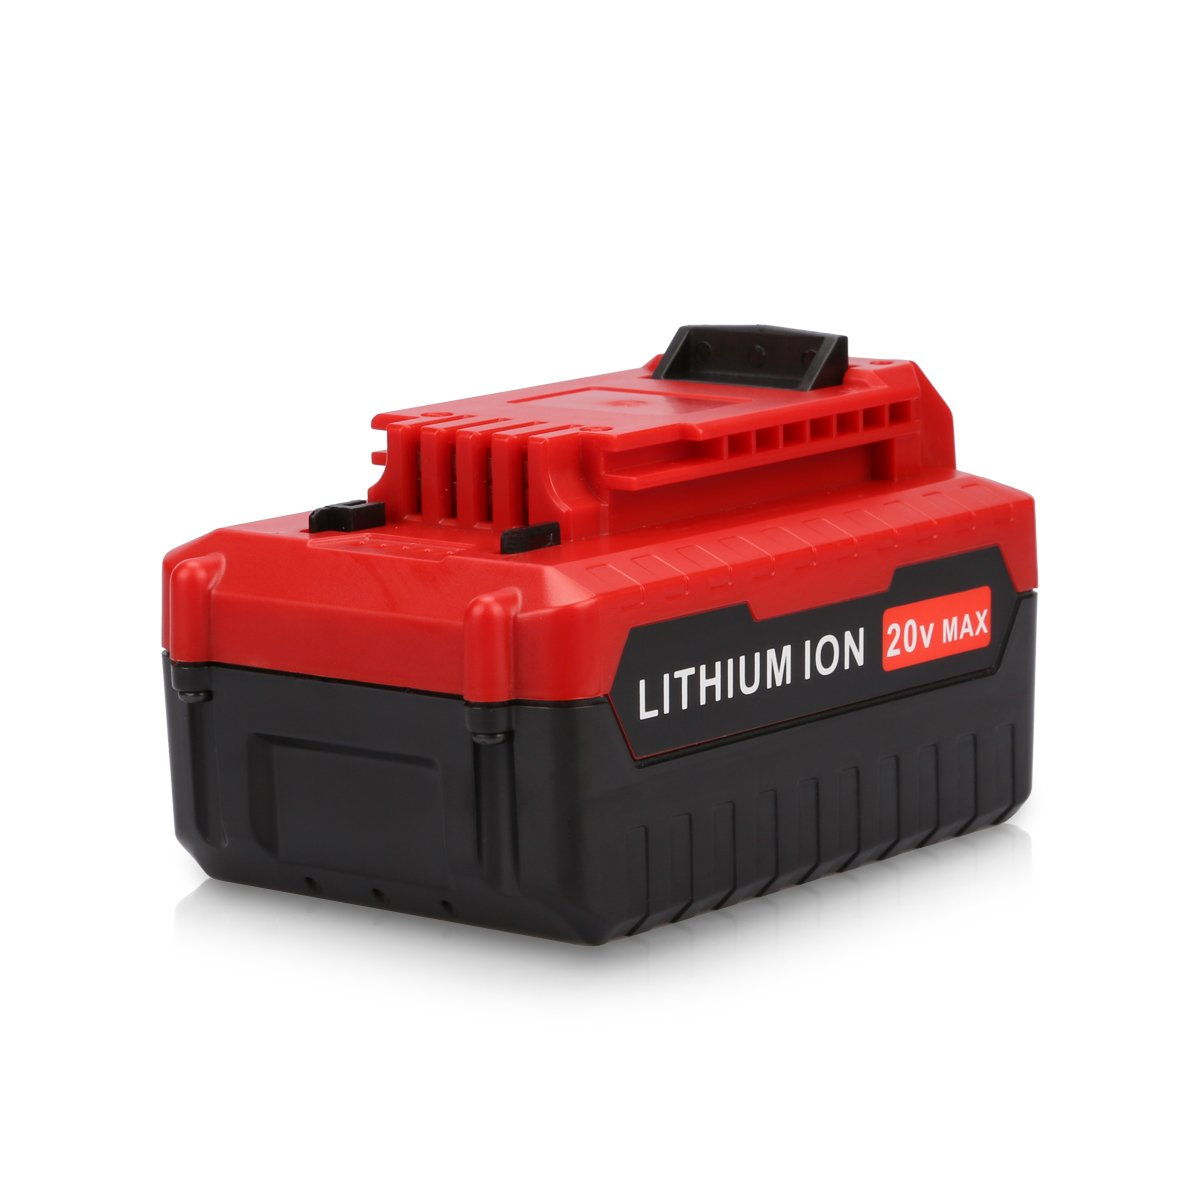 Energup 20V MAX 4.0AH Lithium Replacement Battery for Porter Cable PCC685L PCC680L Cordless Power Tools